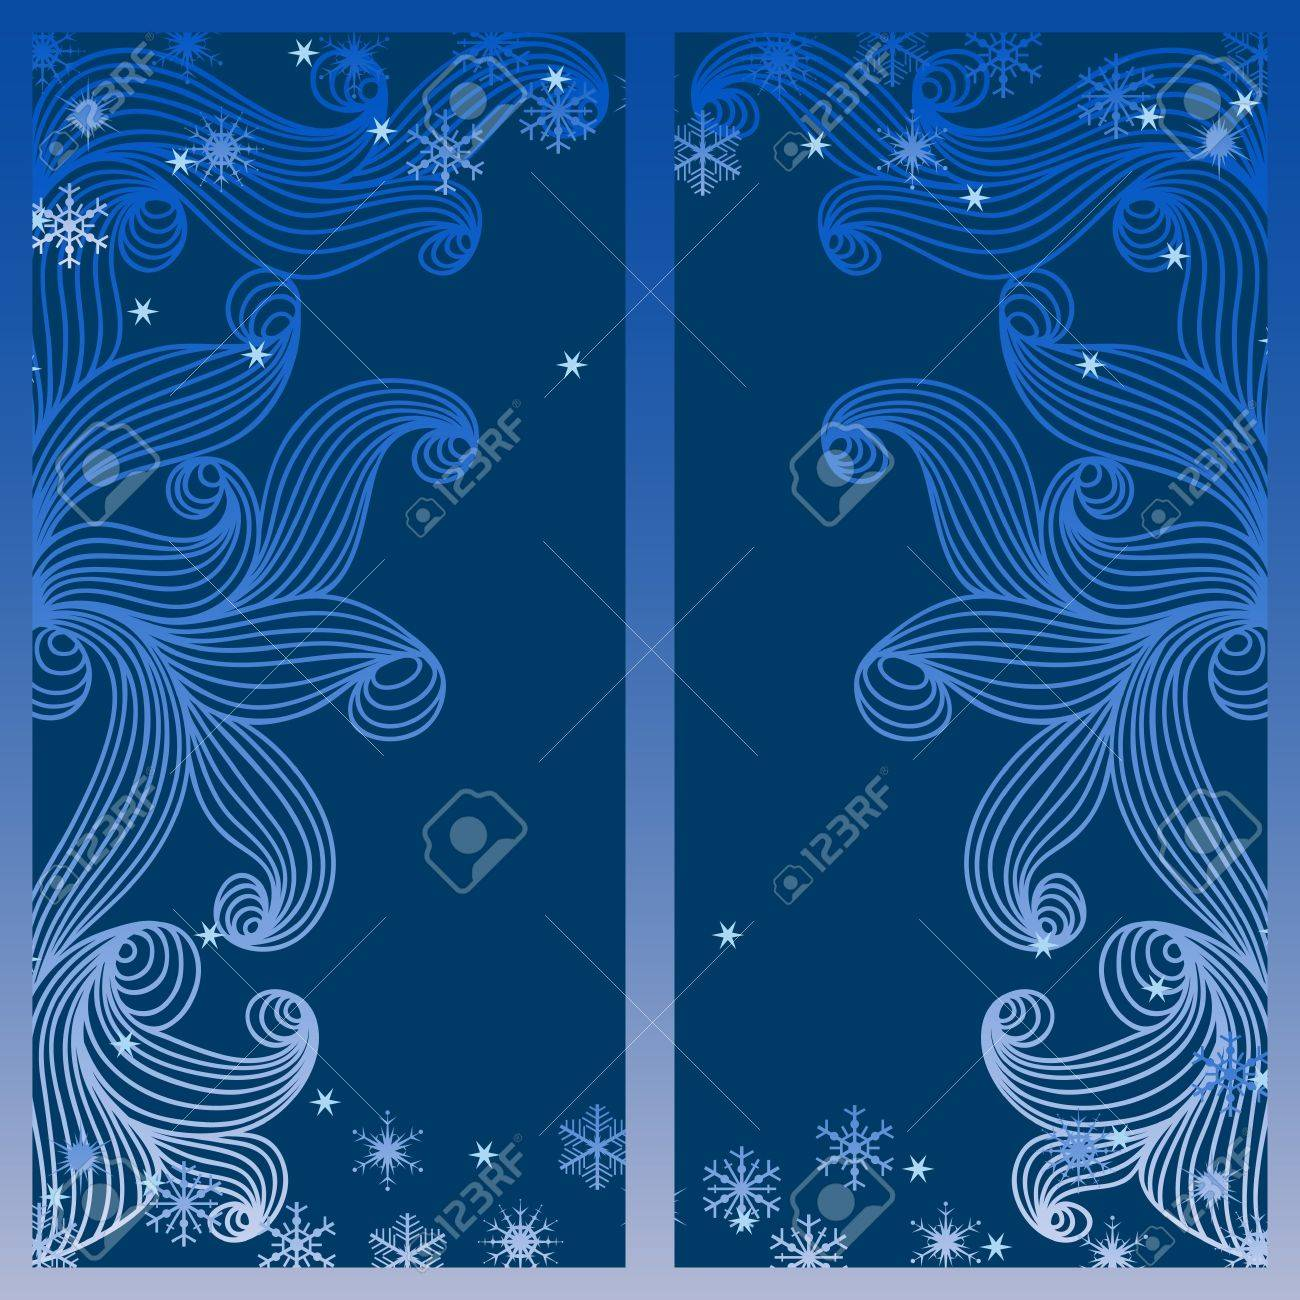 illustration with night winter window and snowflakes. Stock Vector - 16216926